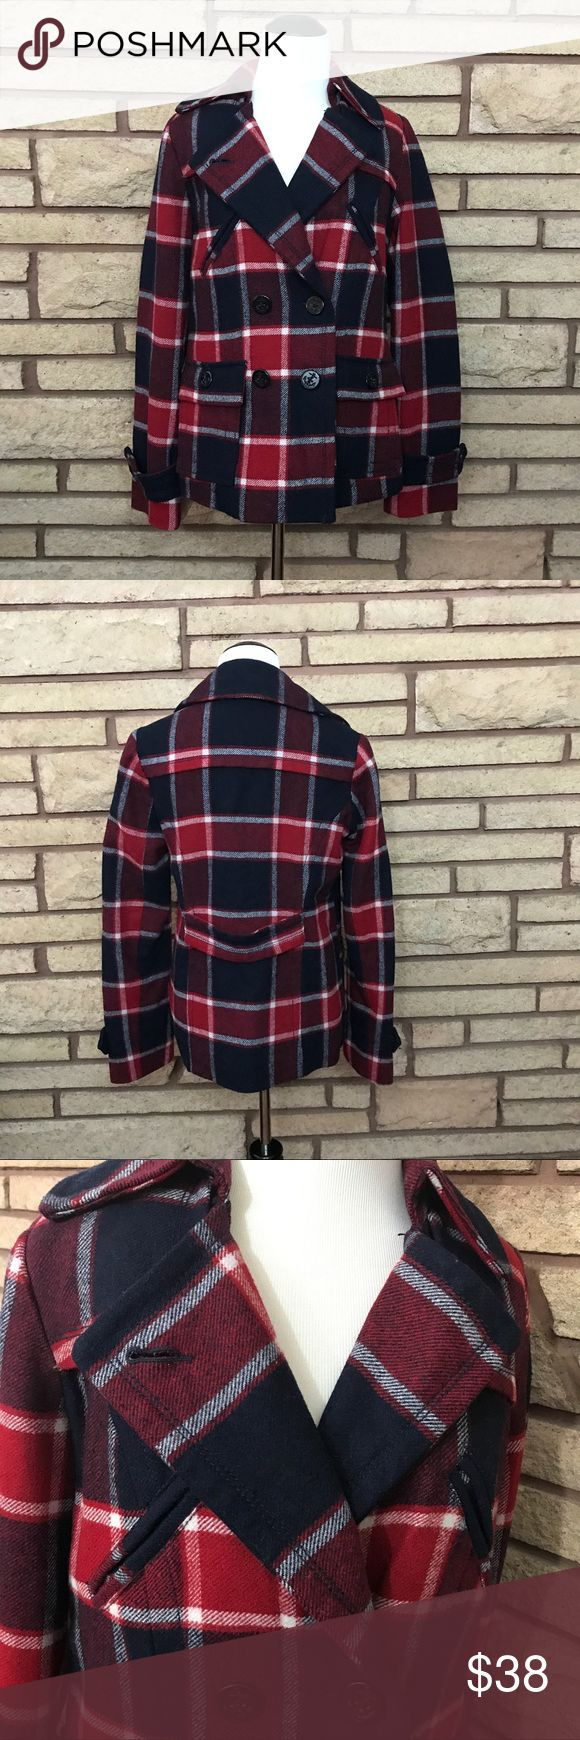 American Eagle Plaid Peacoat 🌑Beautiful red white and blue peacoat   🌘In good used condition    🌗Material: 40% wool 60% rayon  🌖Dimensions: 16in bust, 25in top to bottom  🌕Offers Welcome 🌔Fast shipping 🌓Sorry, no trades 🌒Bundle and save 30% off two or more items 🌑Free gift with every purchase American Eagle Outfitters Jackets & Coats Pea Coats